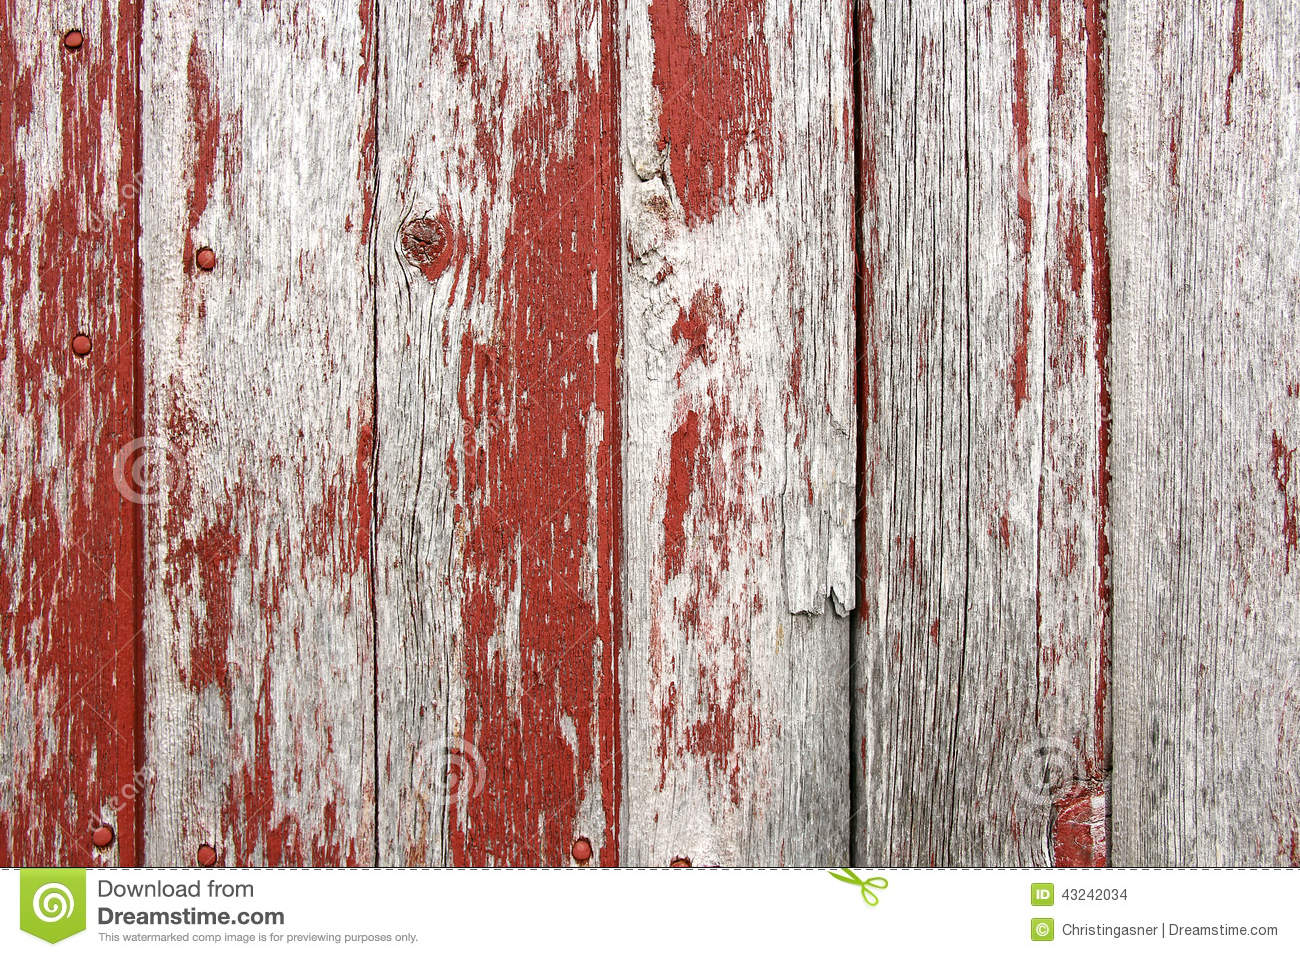 red rustic barn wood background aged barnwood boards peeling paint 1300x957